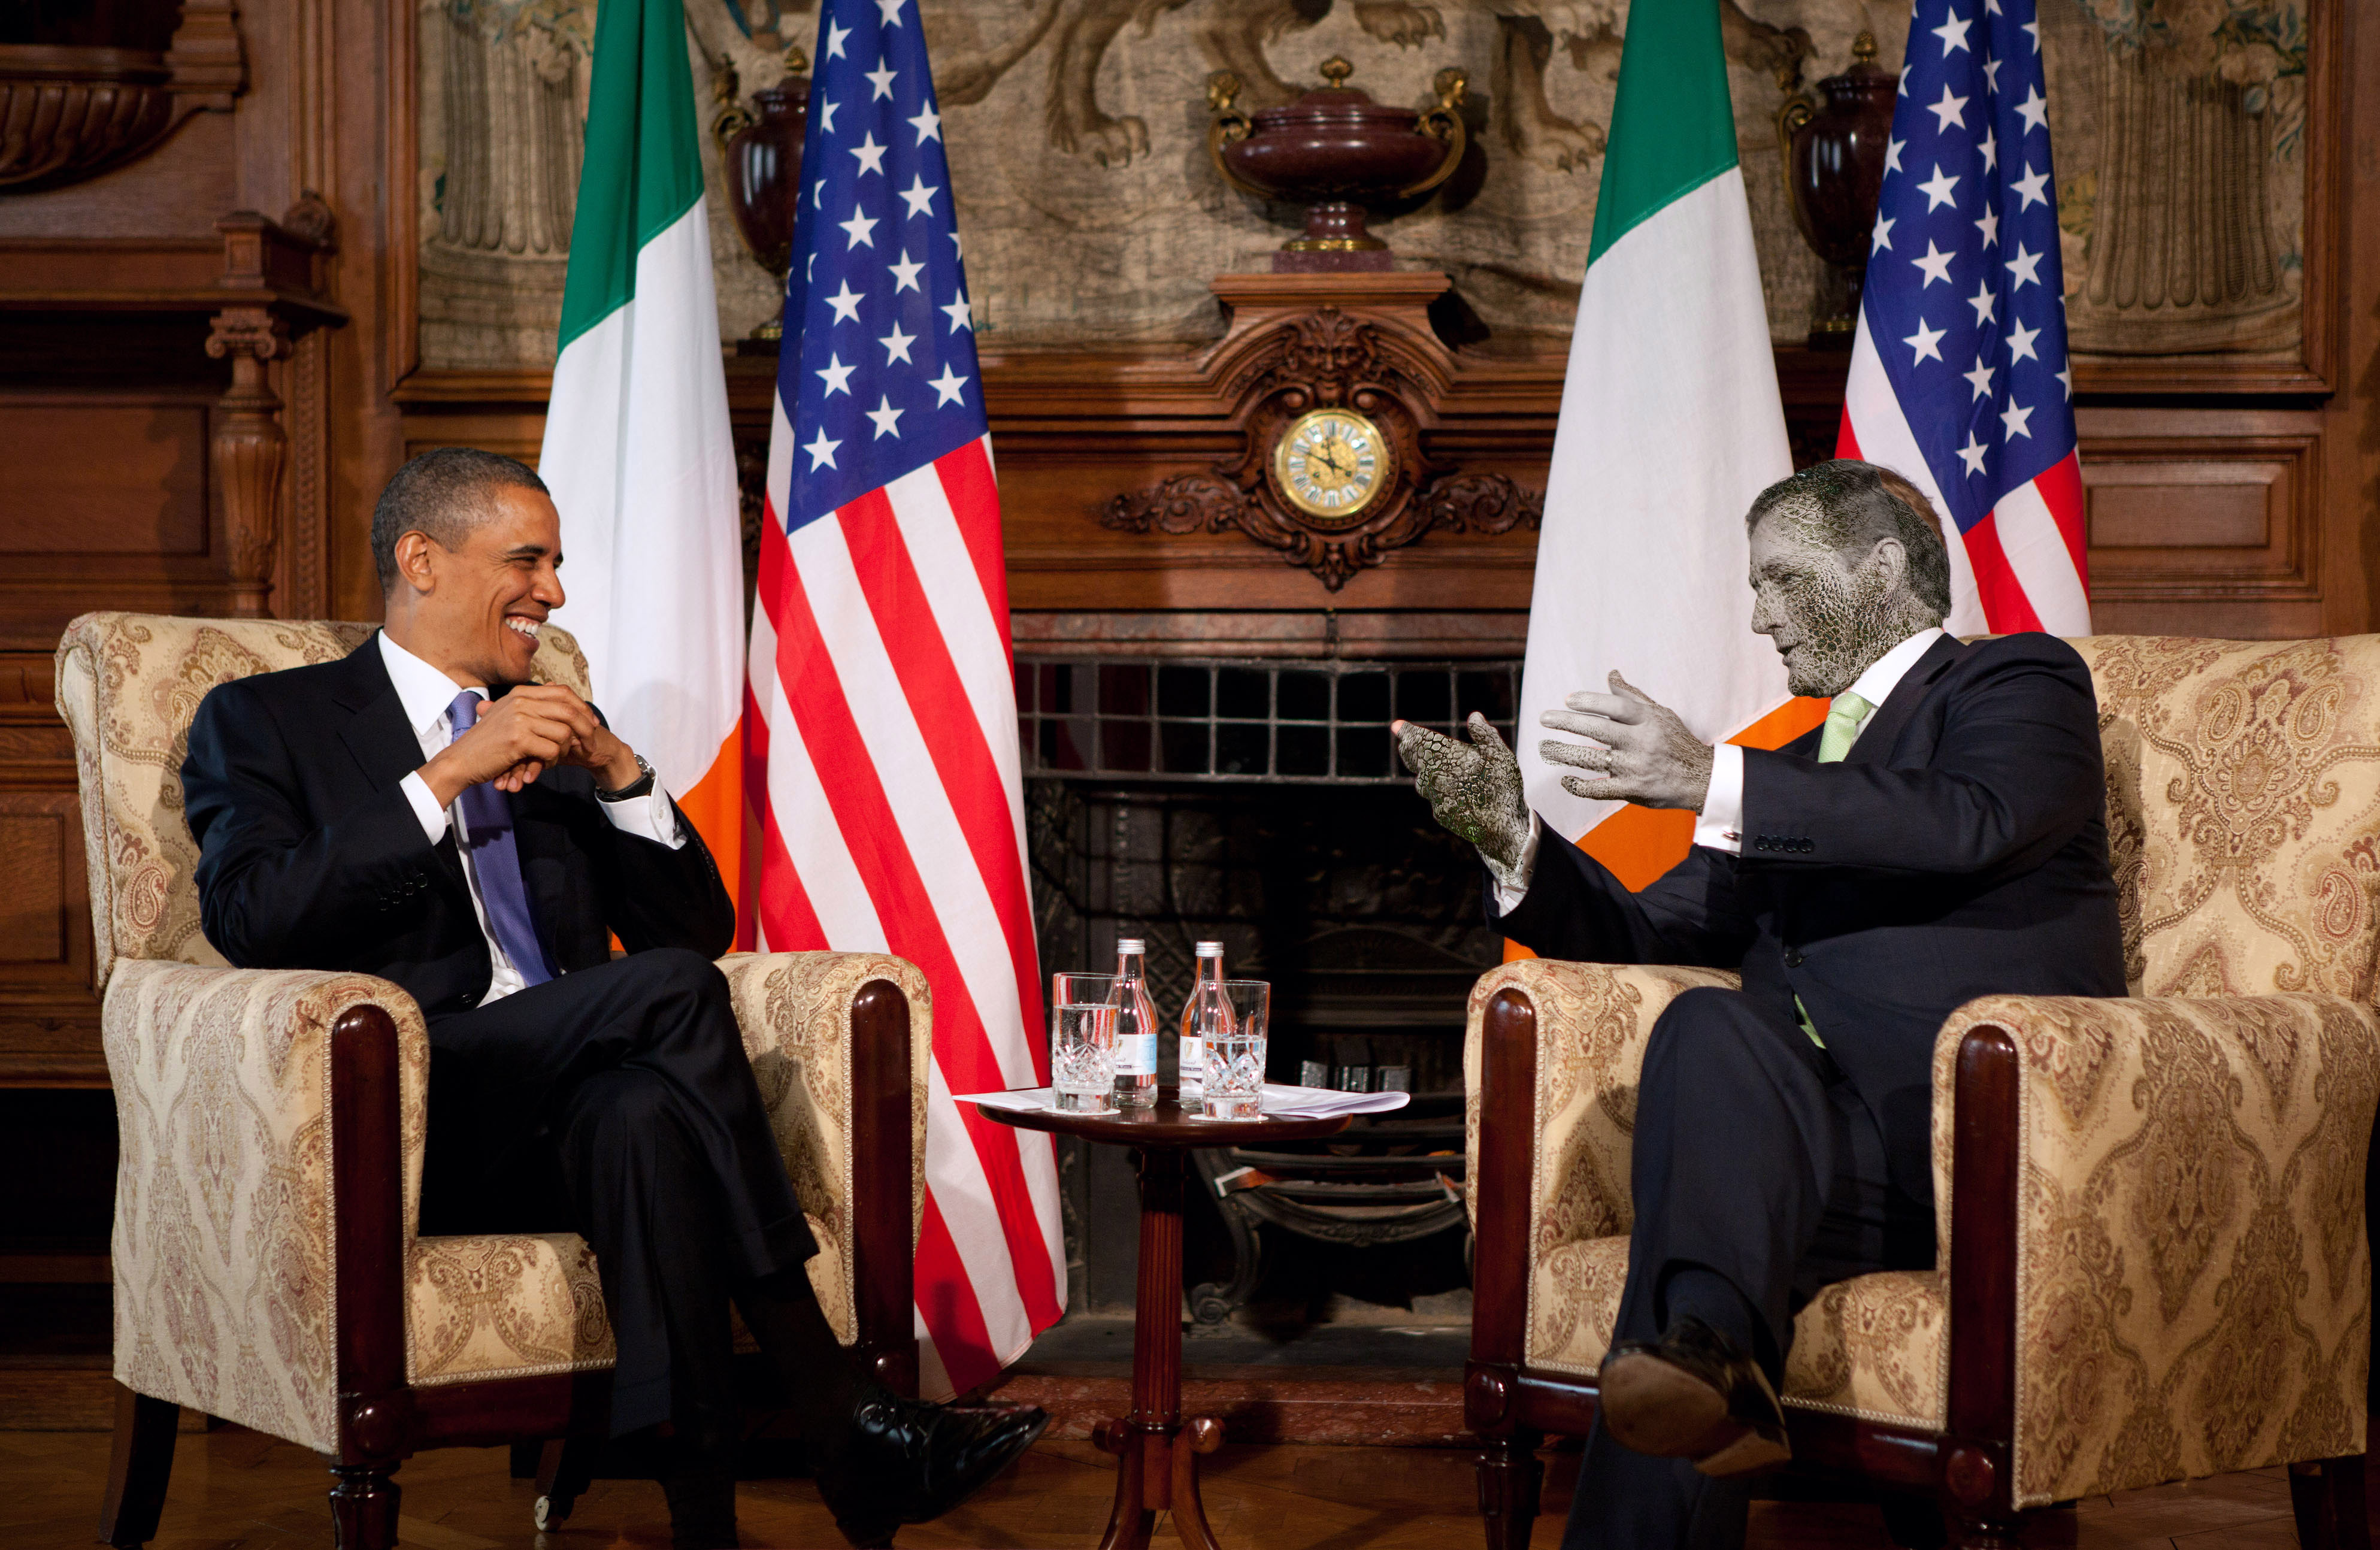 President Barack Obama and Taoiseach Enda Kenny participate in a bilateral meeting in the Dining Room at Farmleigh in Dublin, Ireland, May 23, 2011. (Official White House Photo by Pete Souza)